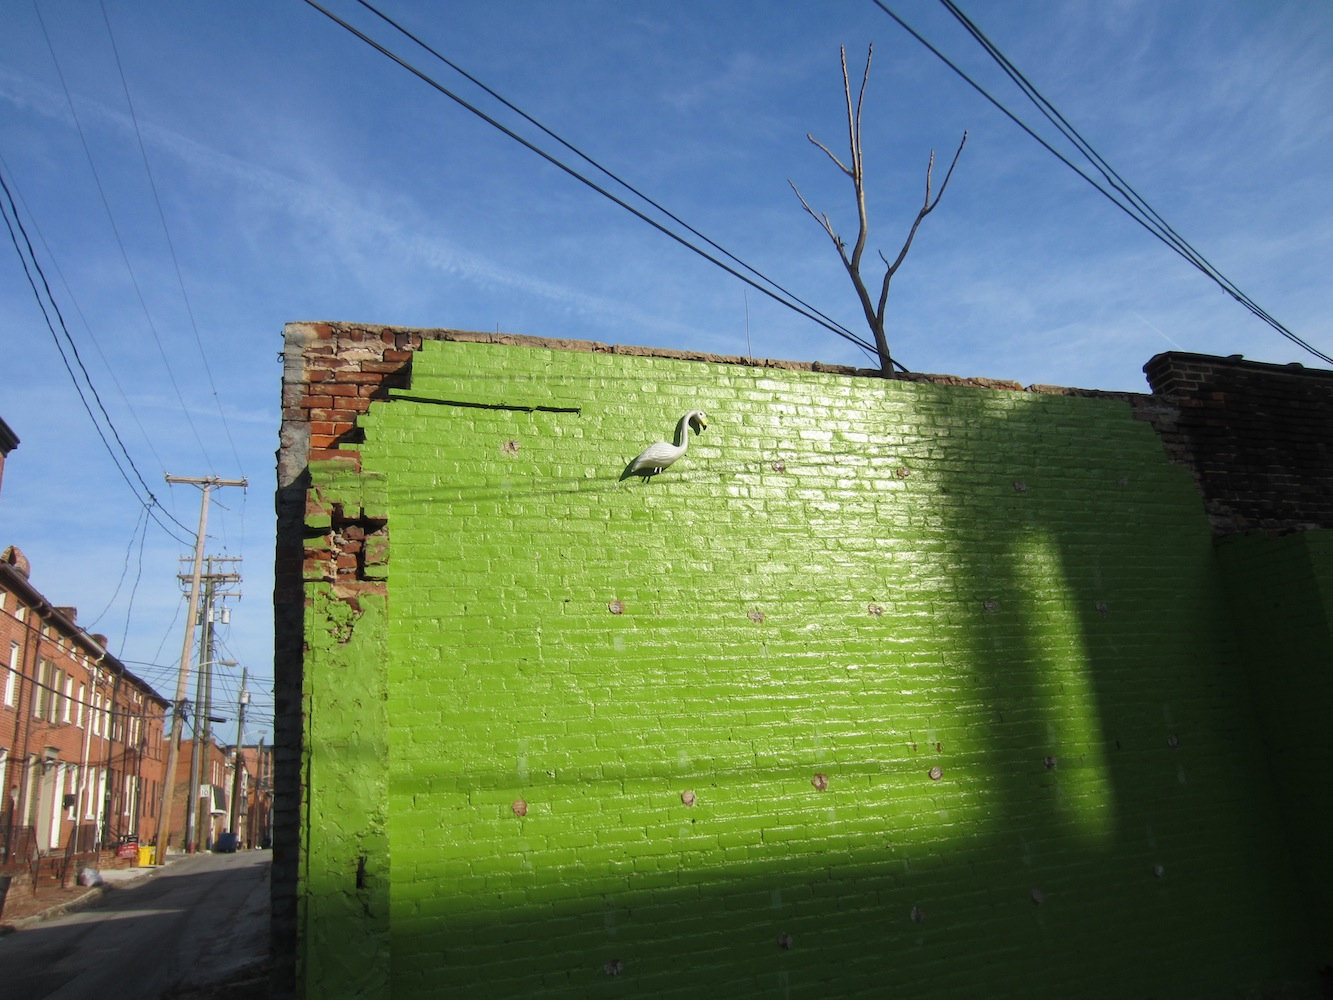 green wall with a white flamingo, alley view